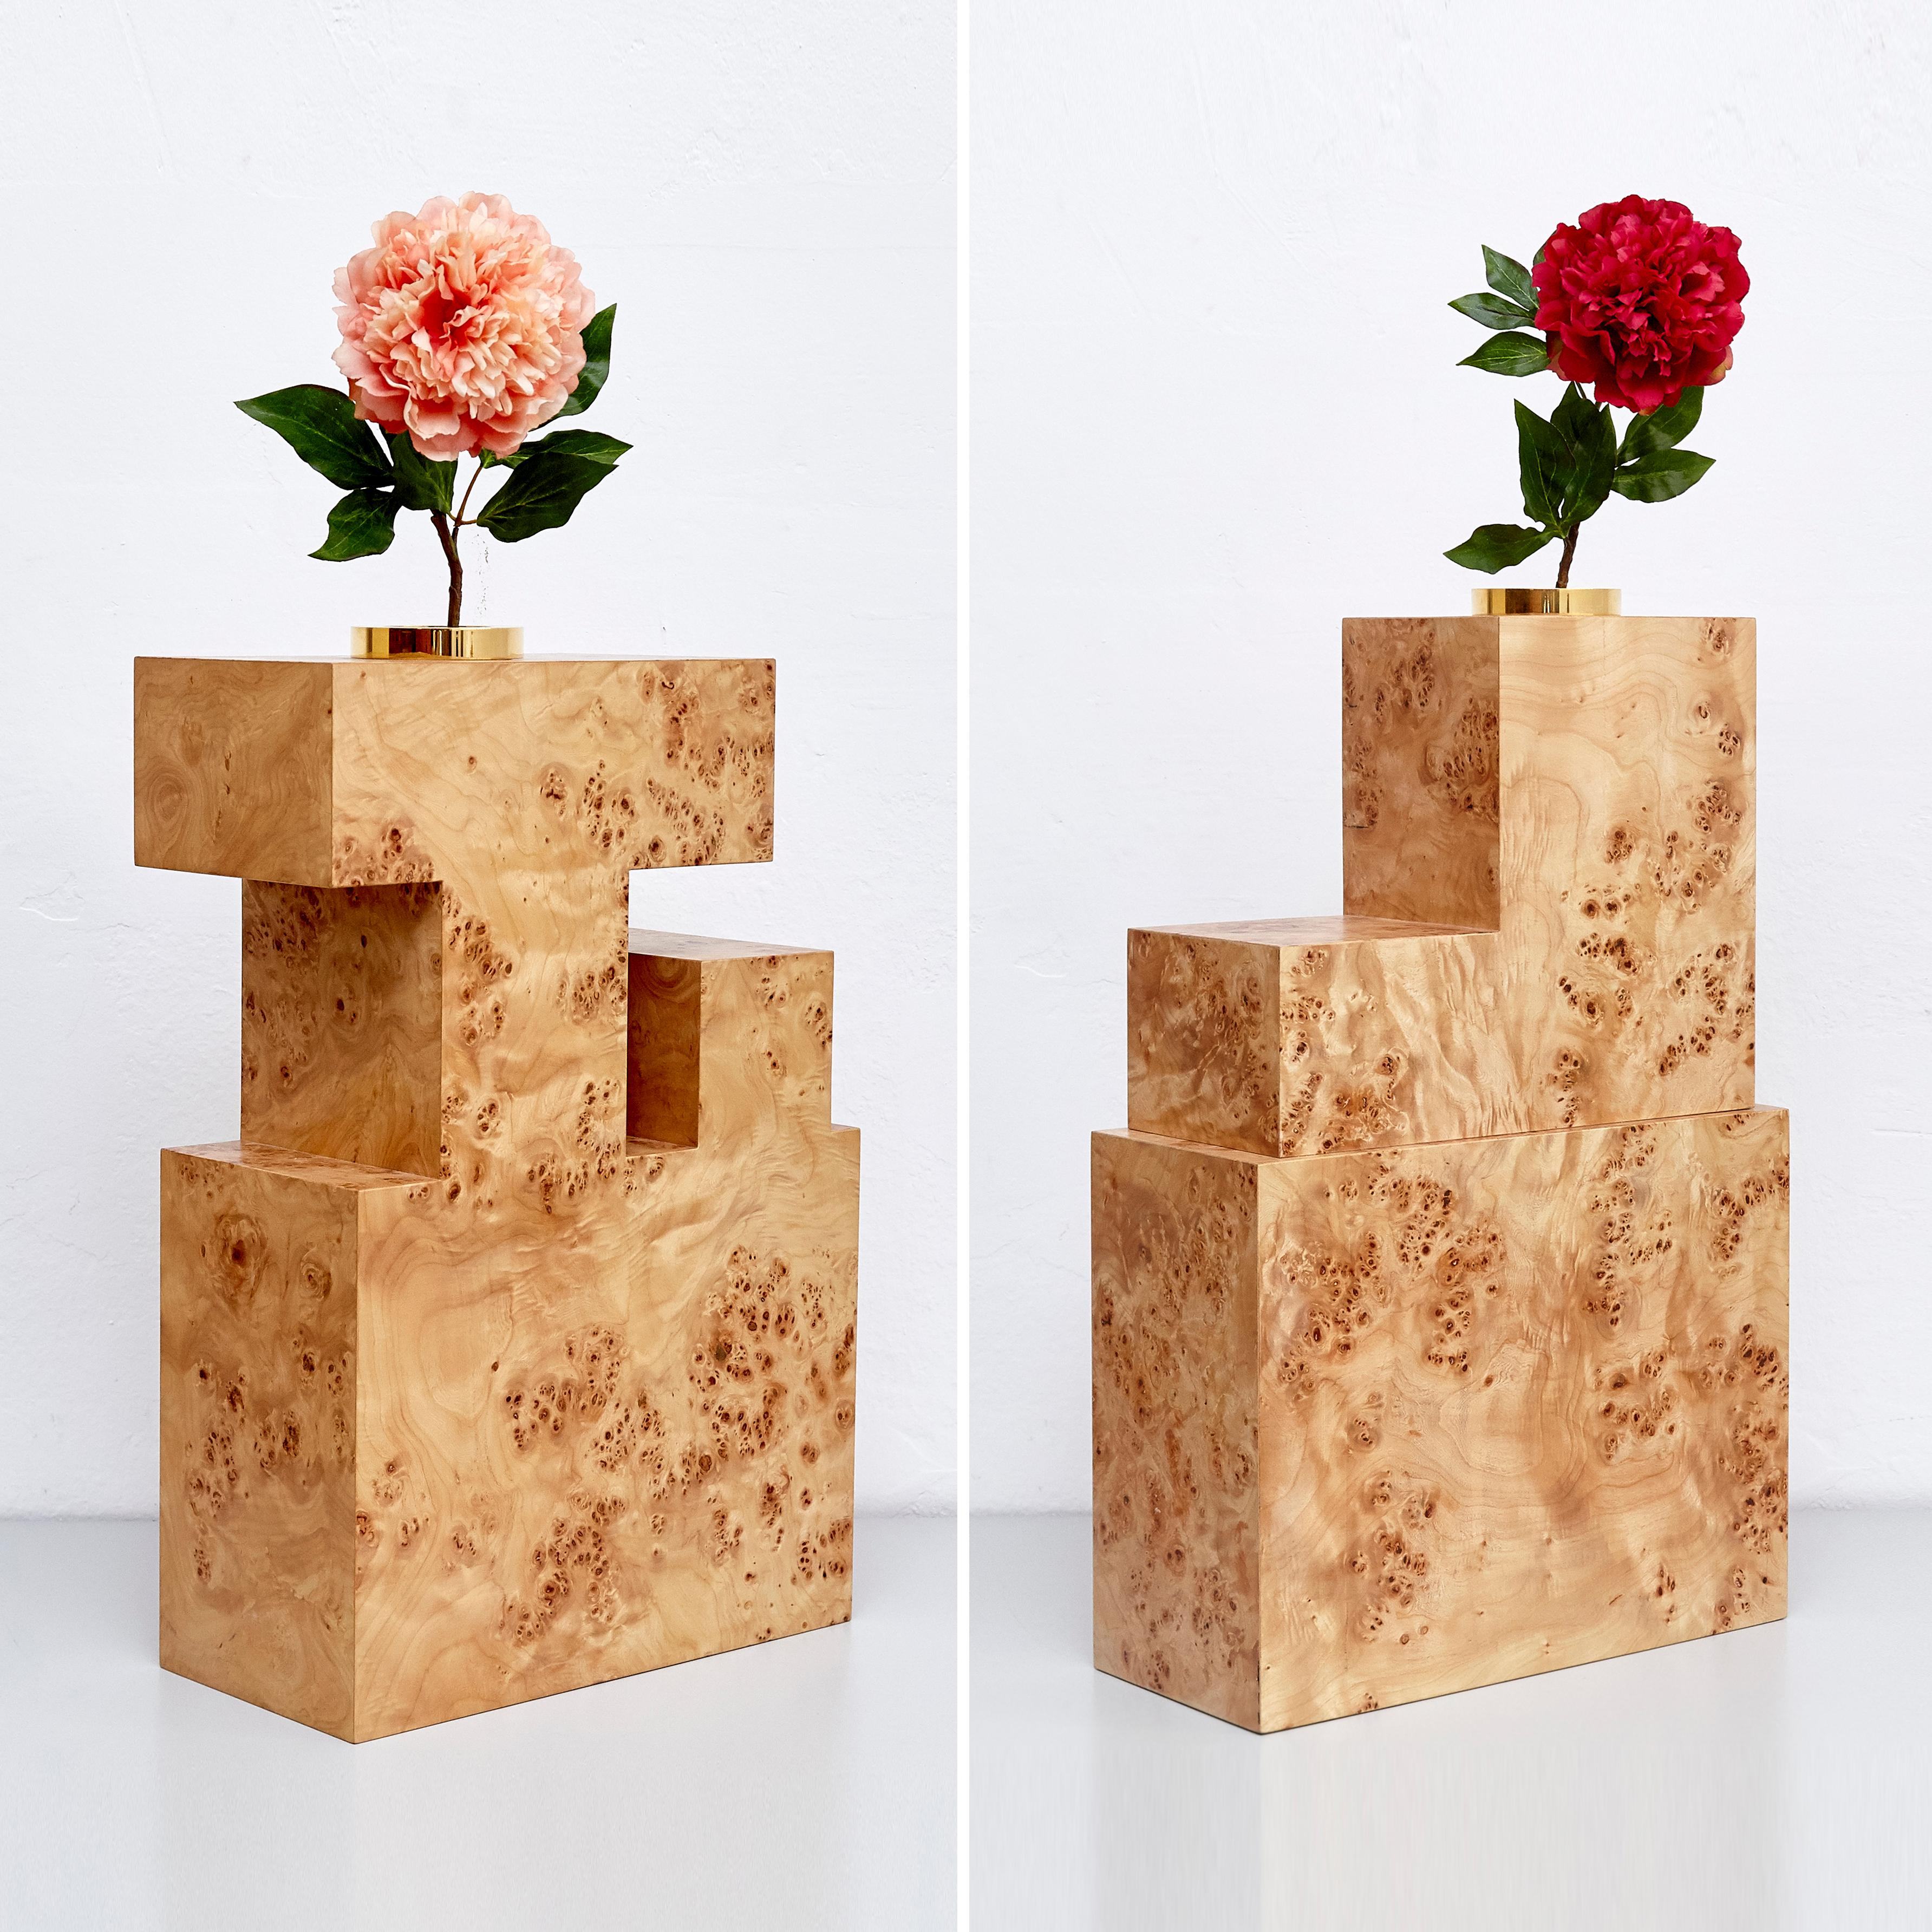 1stDibs & Complete Ettore Sottsass Twentyseven Woods Vases for Chinese Artificial Flowers